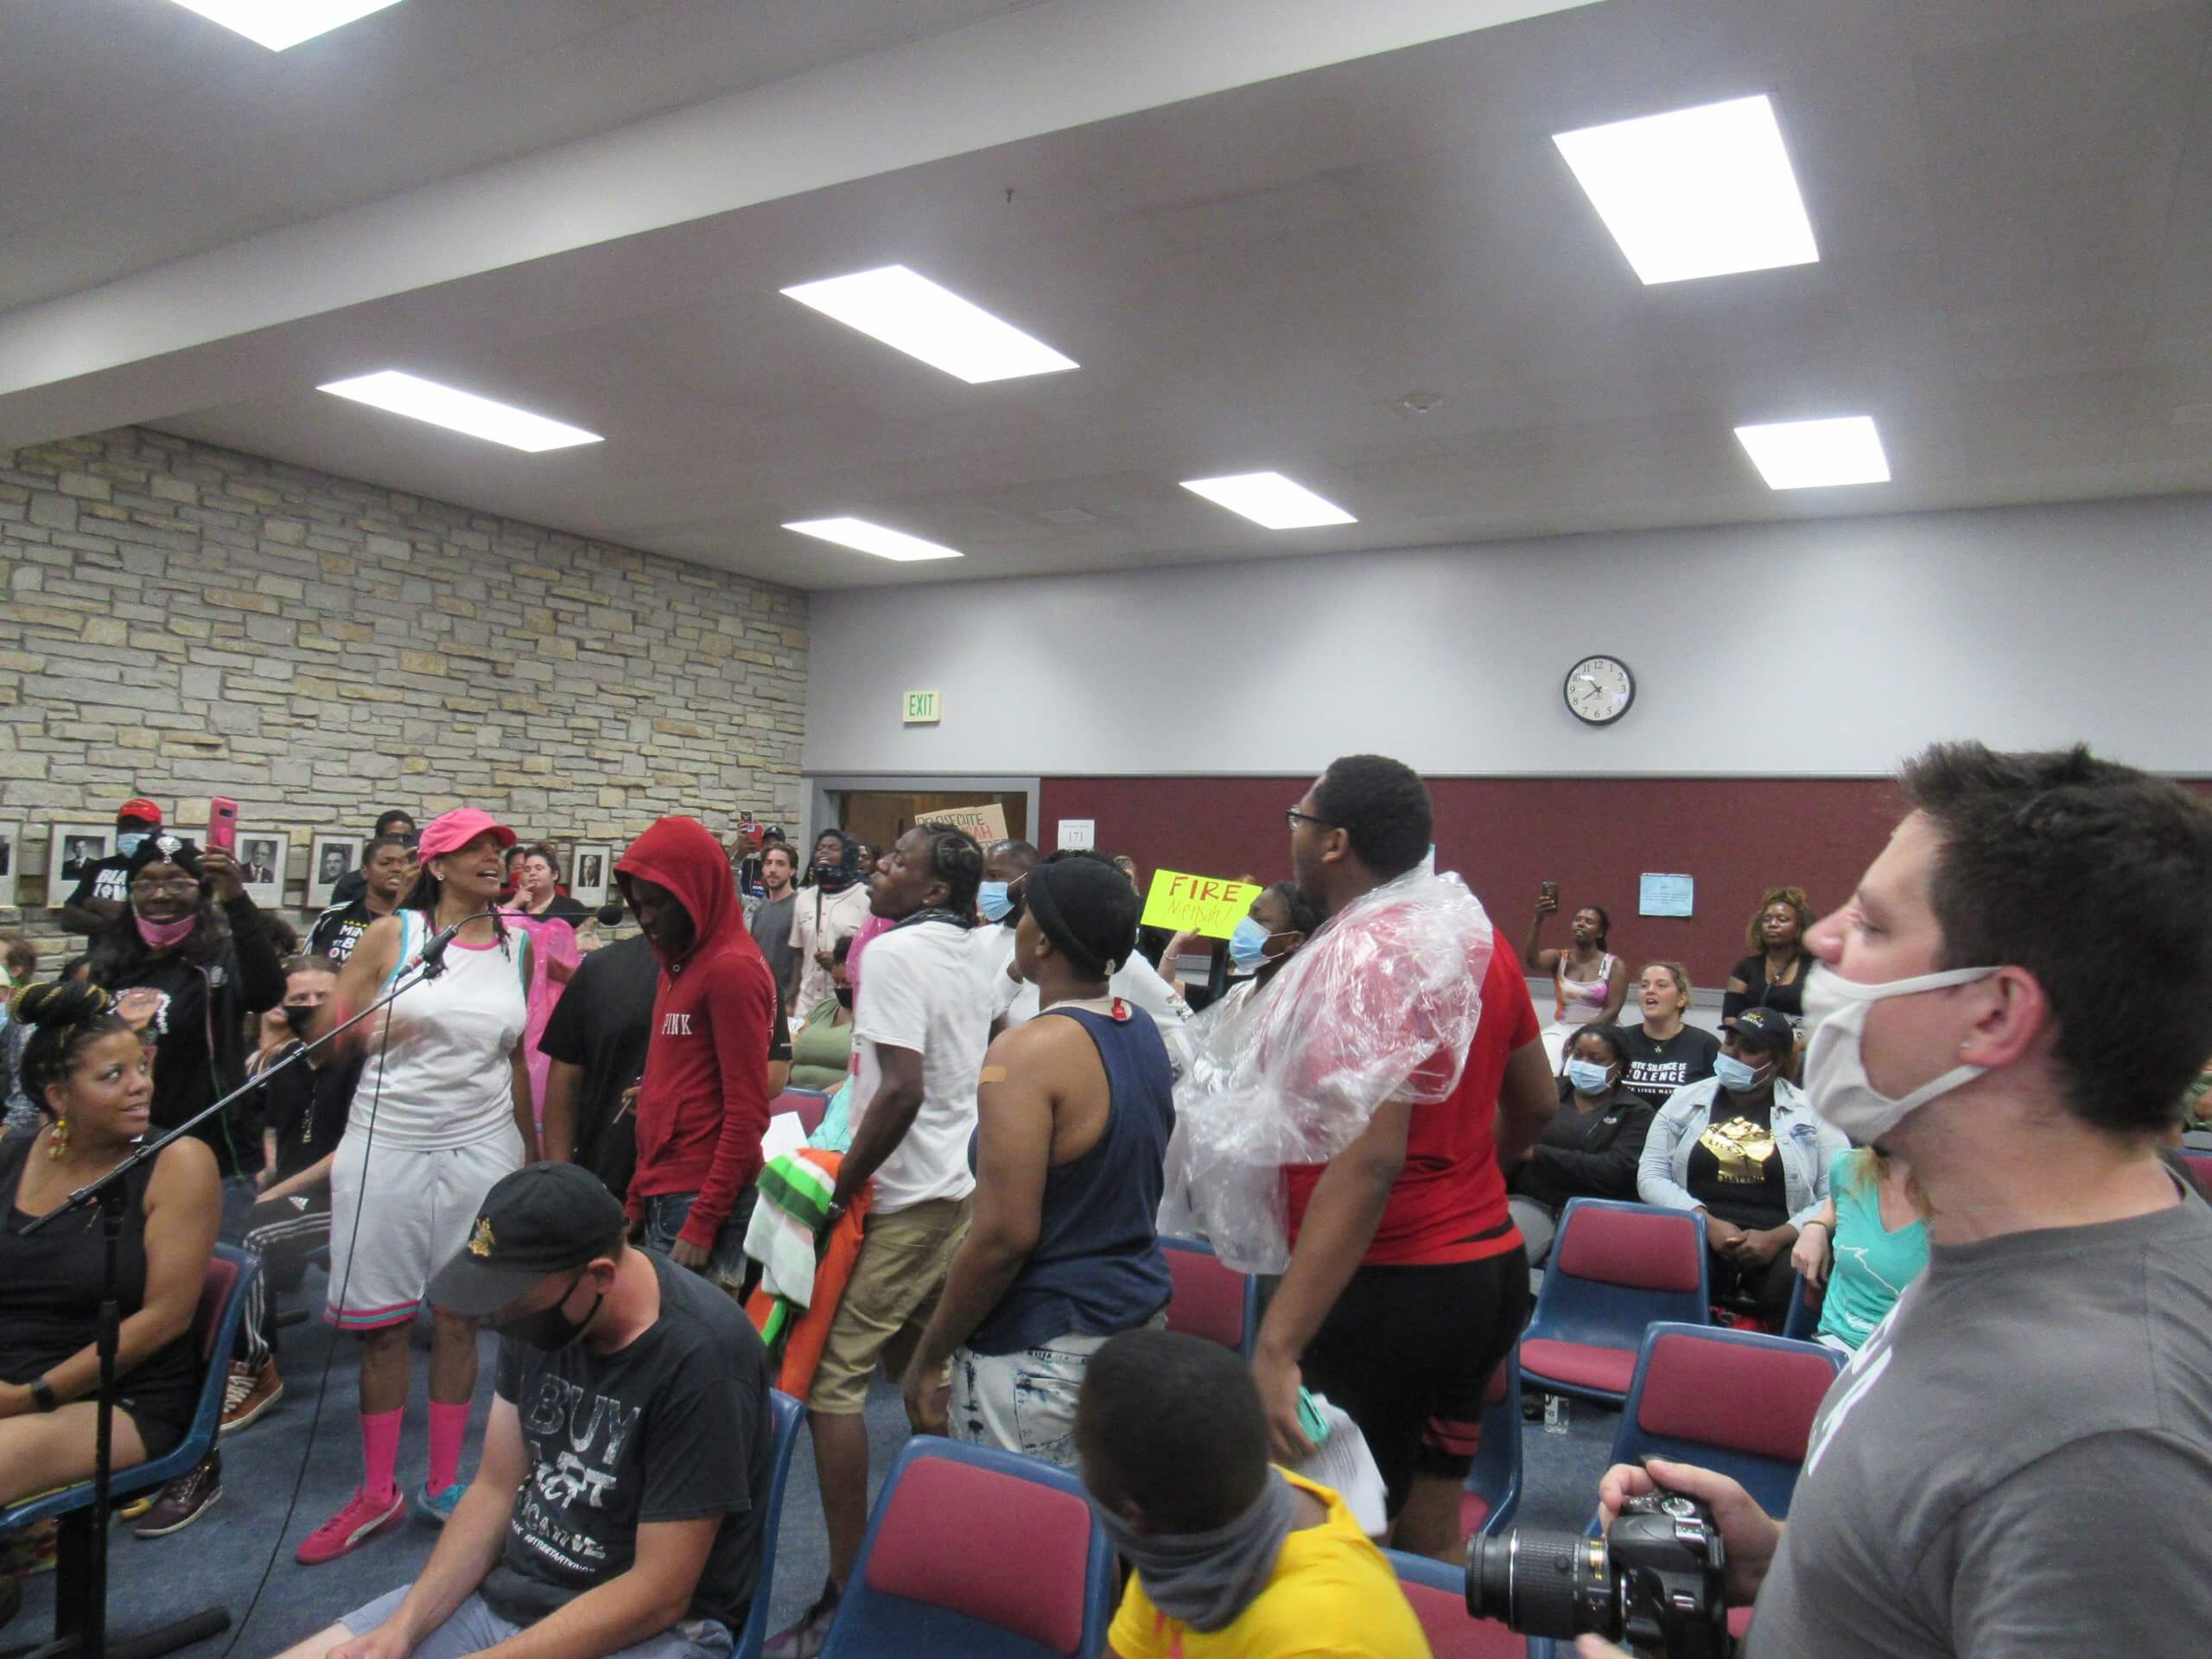 A look at the crowd who'd just left a tense protest where police conducted arrests. They peacefully disrupted the meeting the entire time. (Photo by Isiah Holmes)